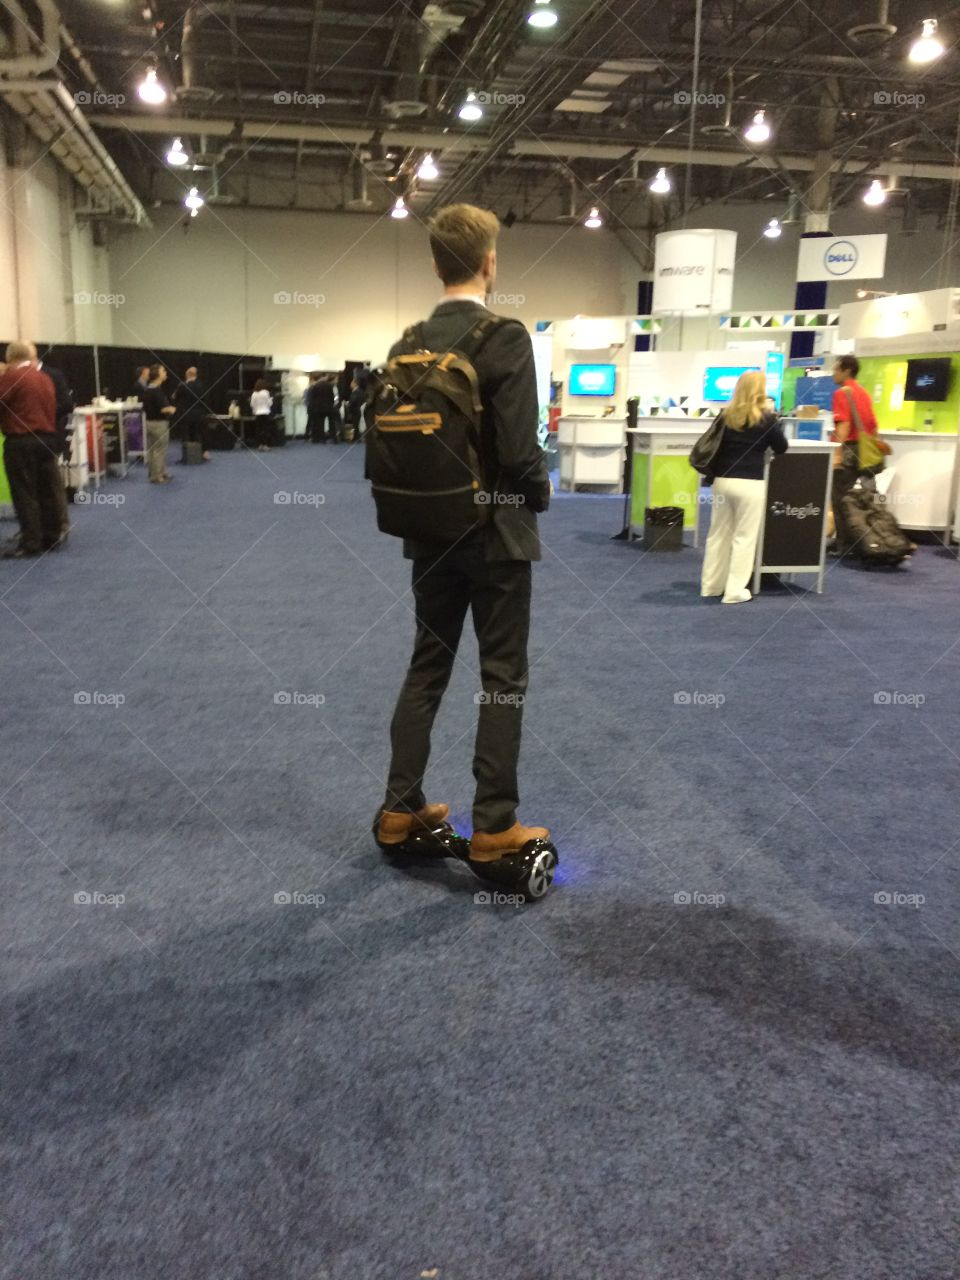 Guy on hover board at conference